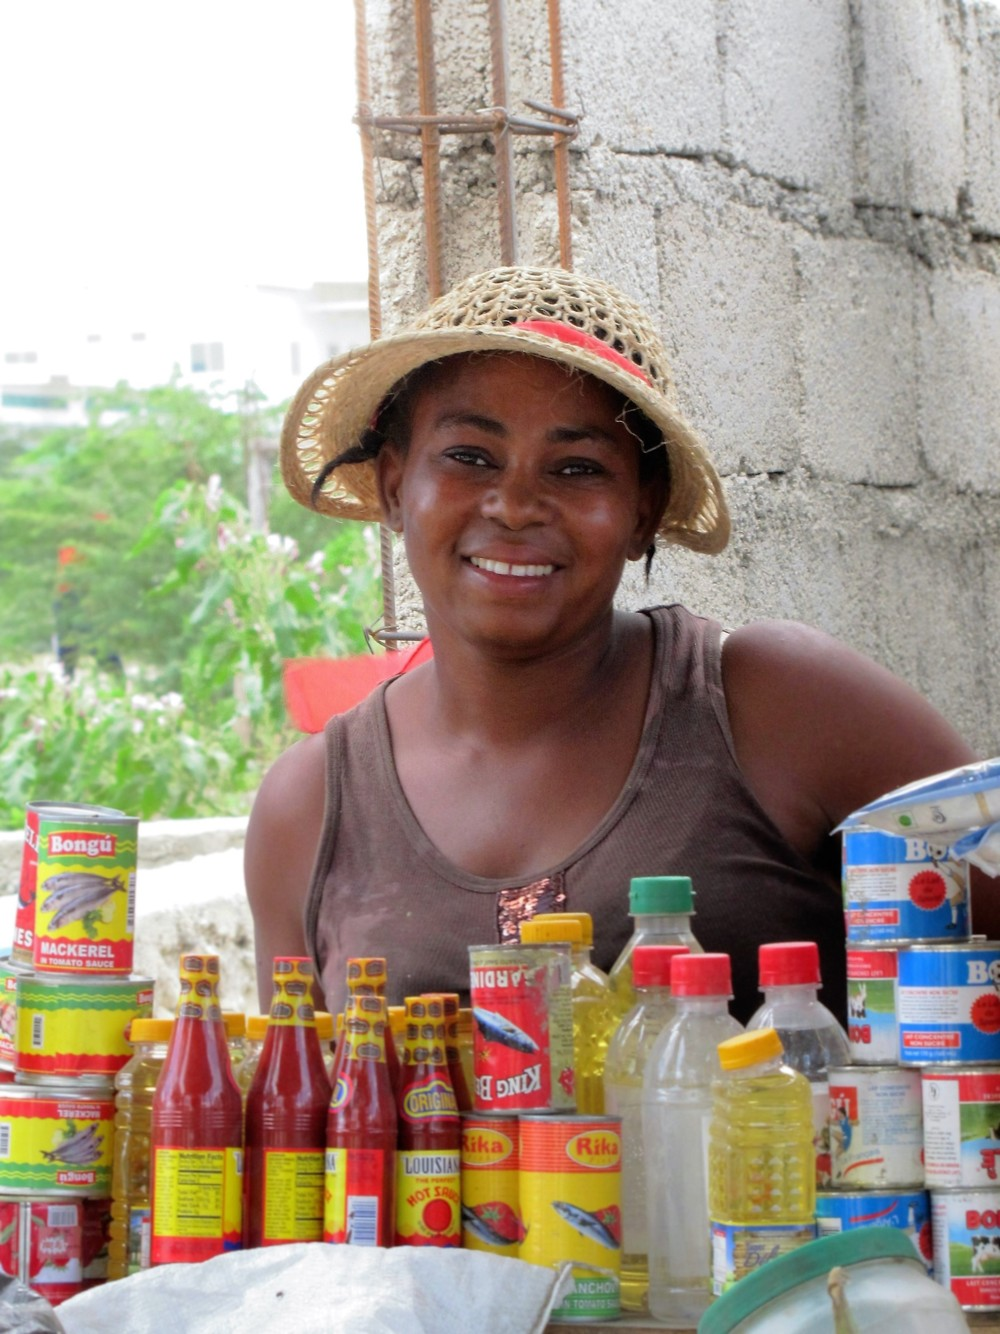 Kettelie, small business owner and Avanse Ansanm participant